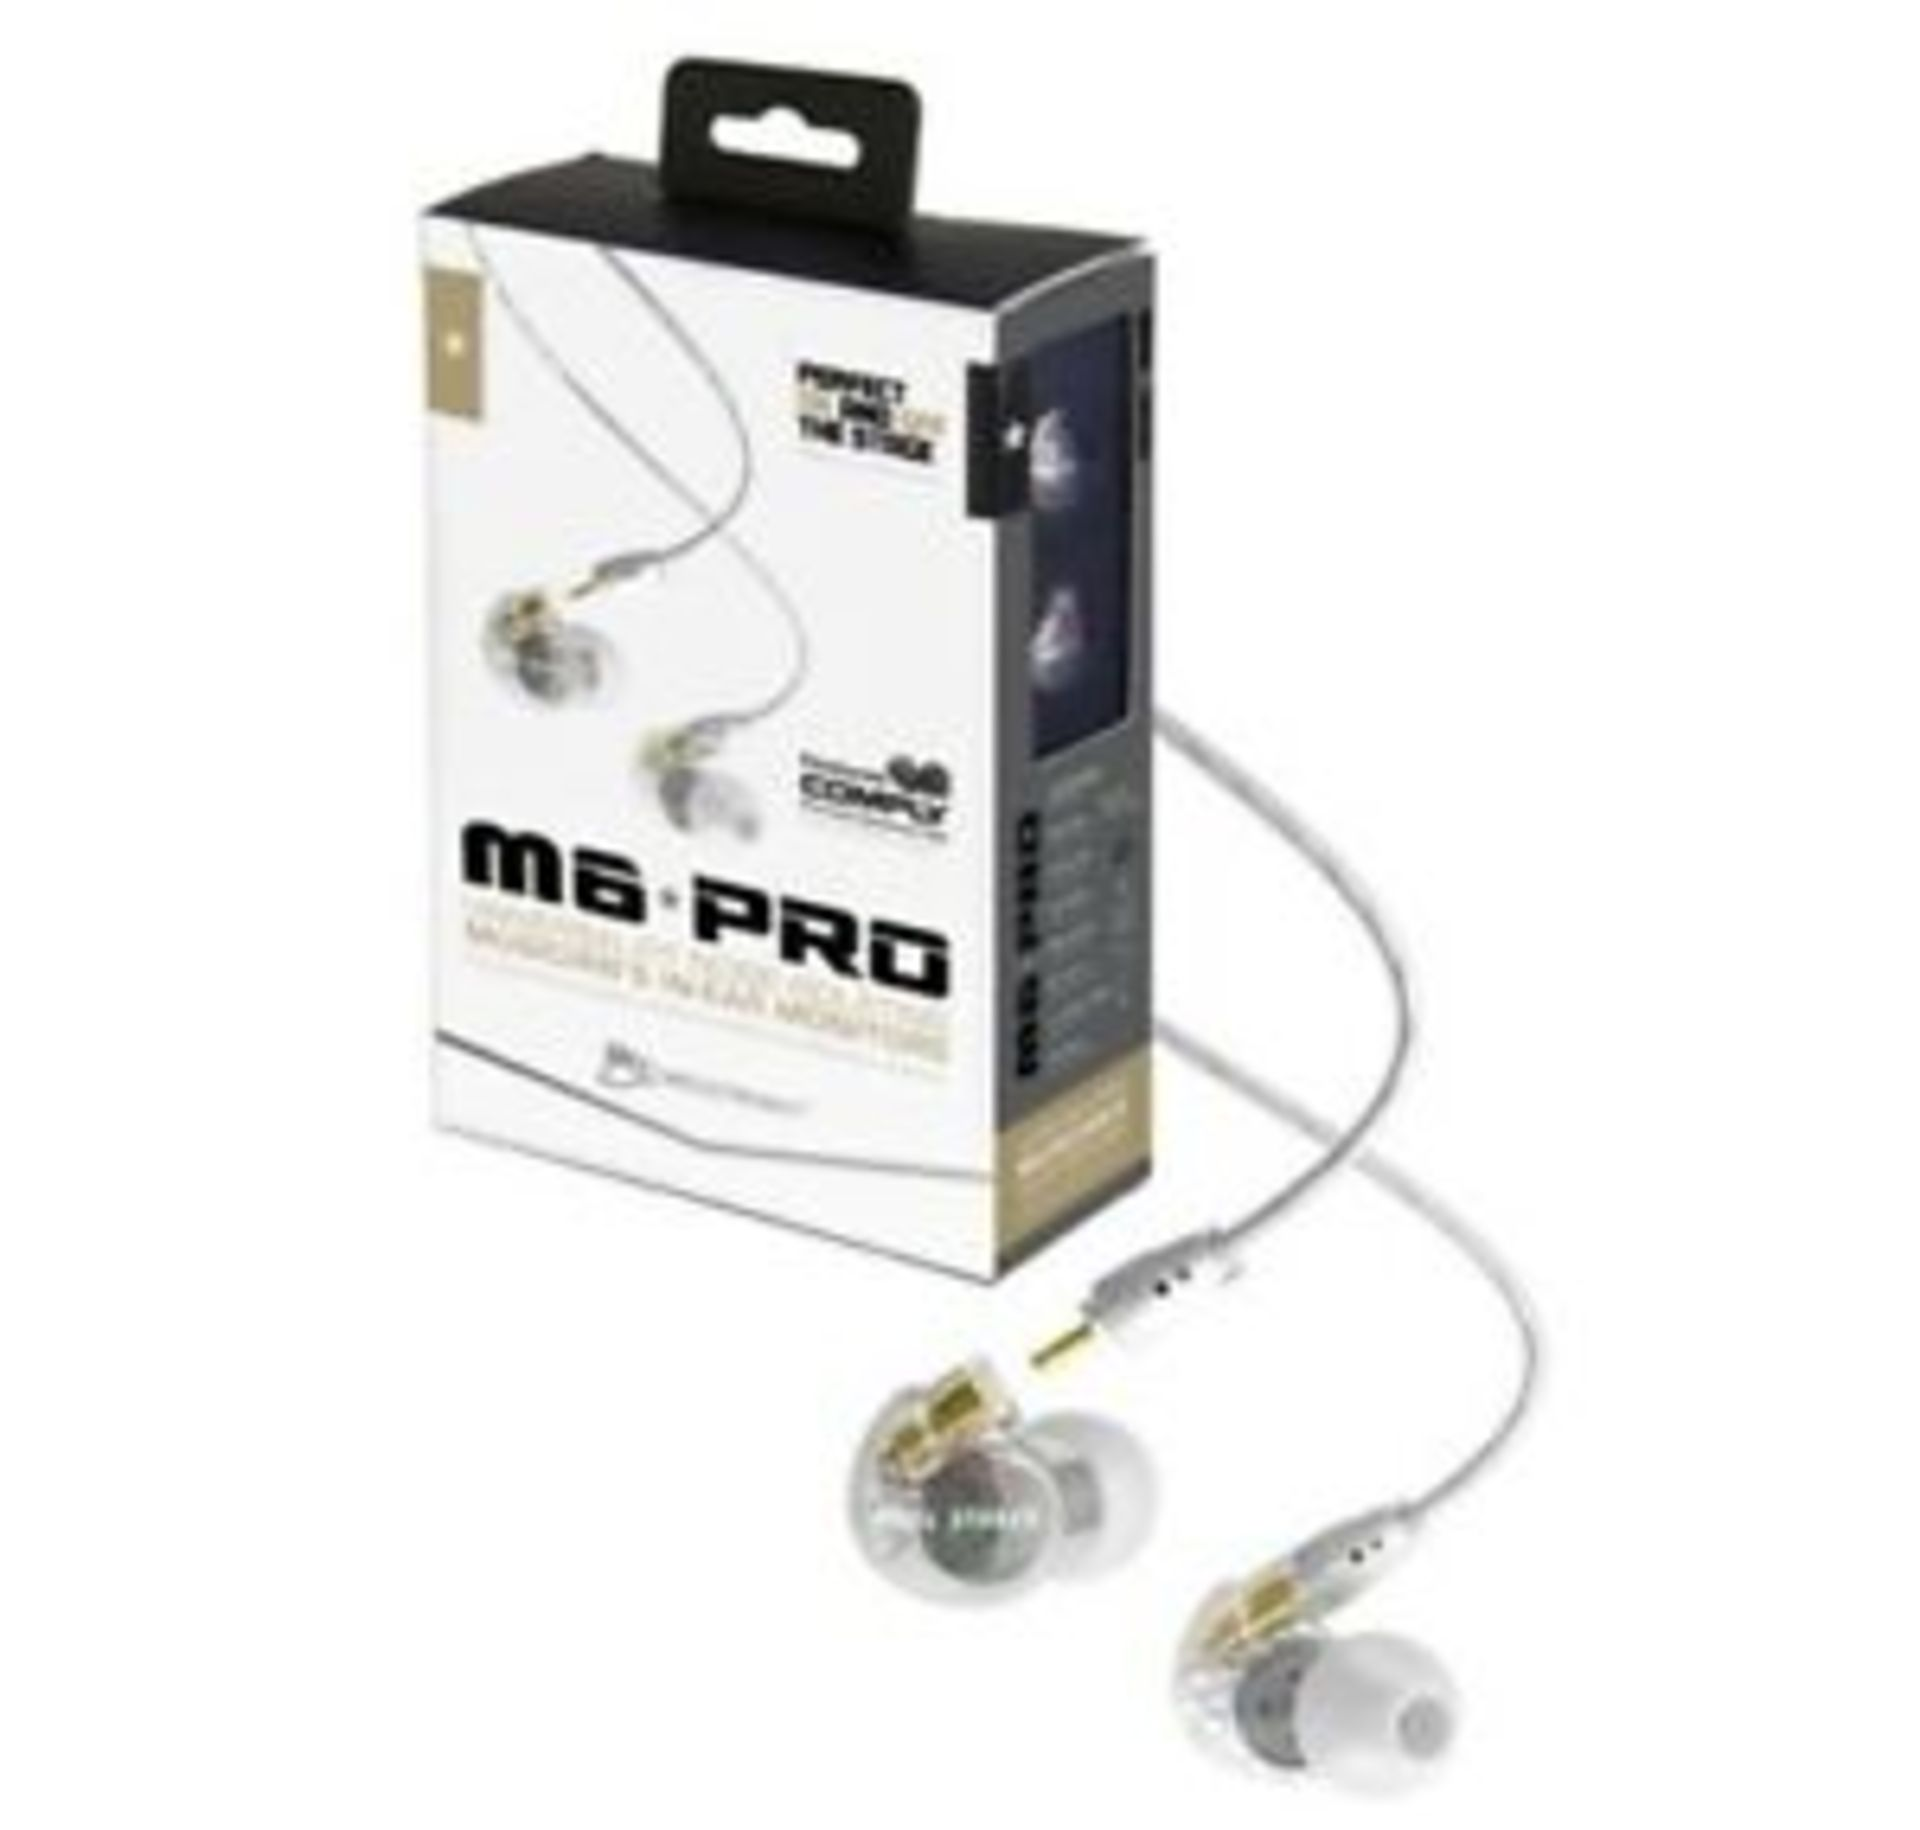 + VAT Grade A Mee Audio M6 Pro Clear Universal Isolating Musicians In Ear Monitors - Image 2 of 2